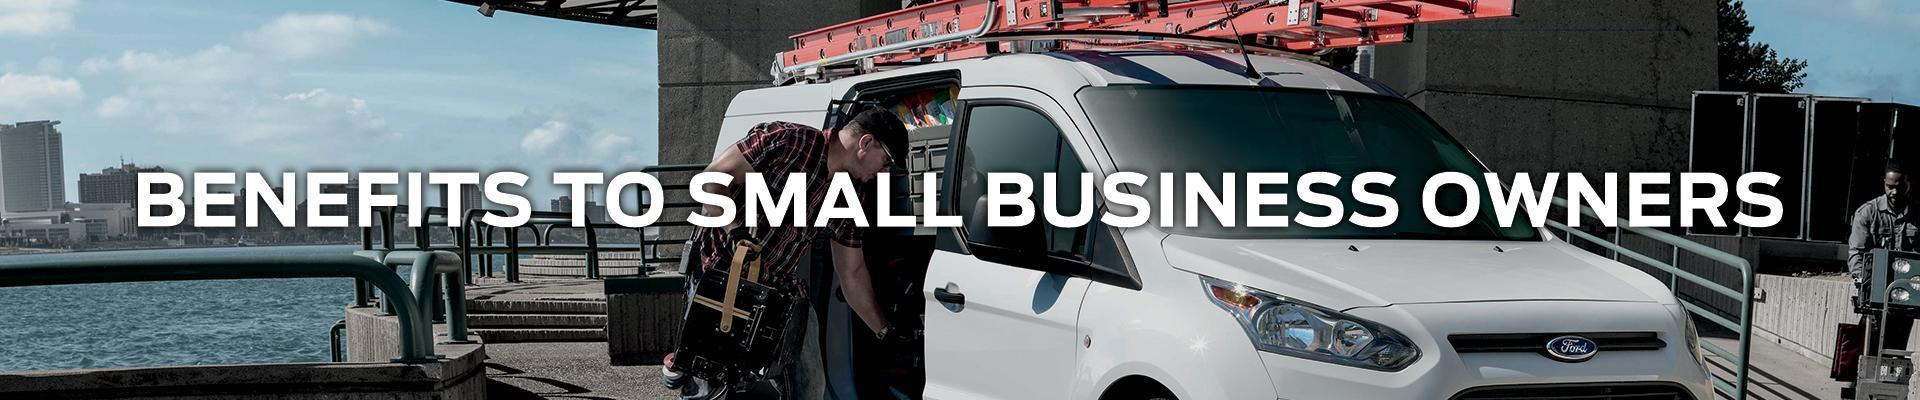 Benefits to Small Business Owners